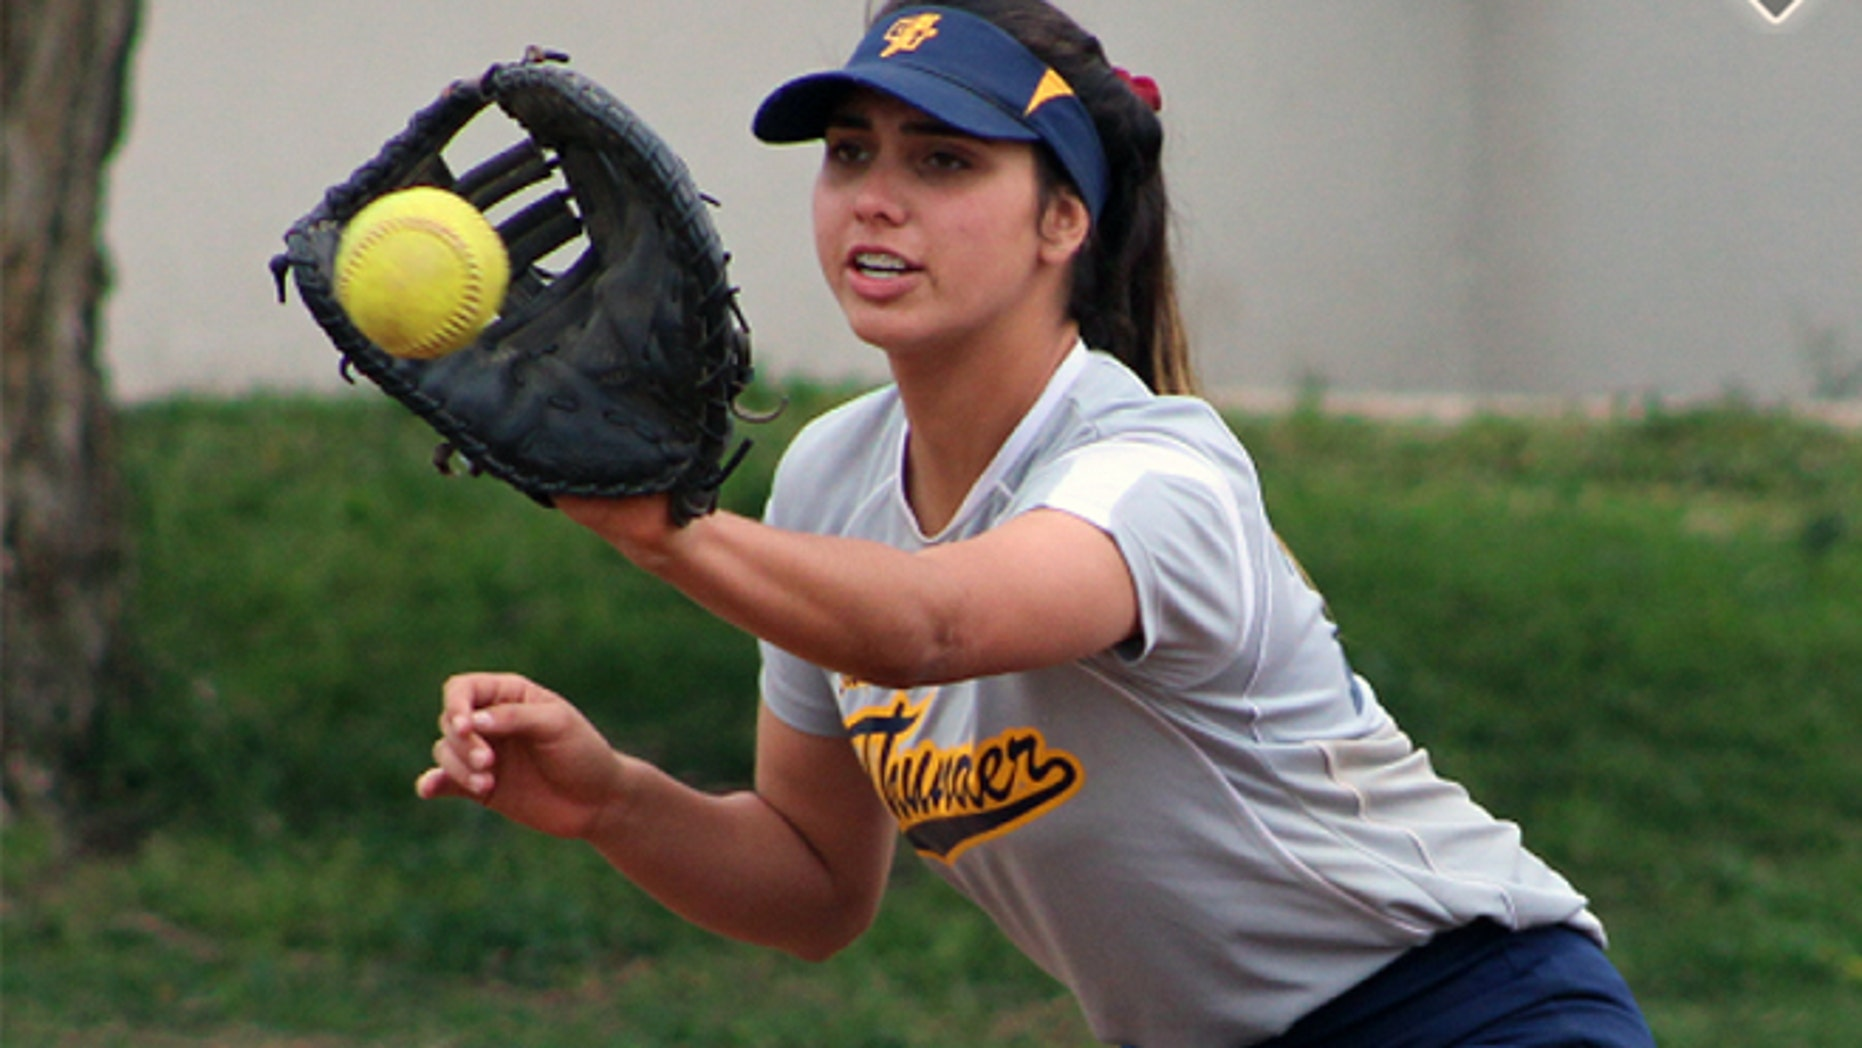 Dana Housley is on life support after suffering a collapsing during a softball game.